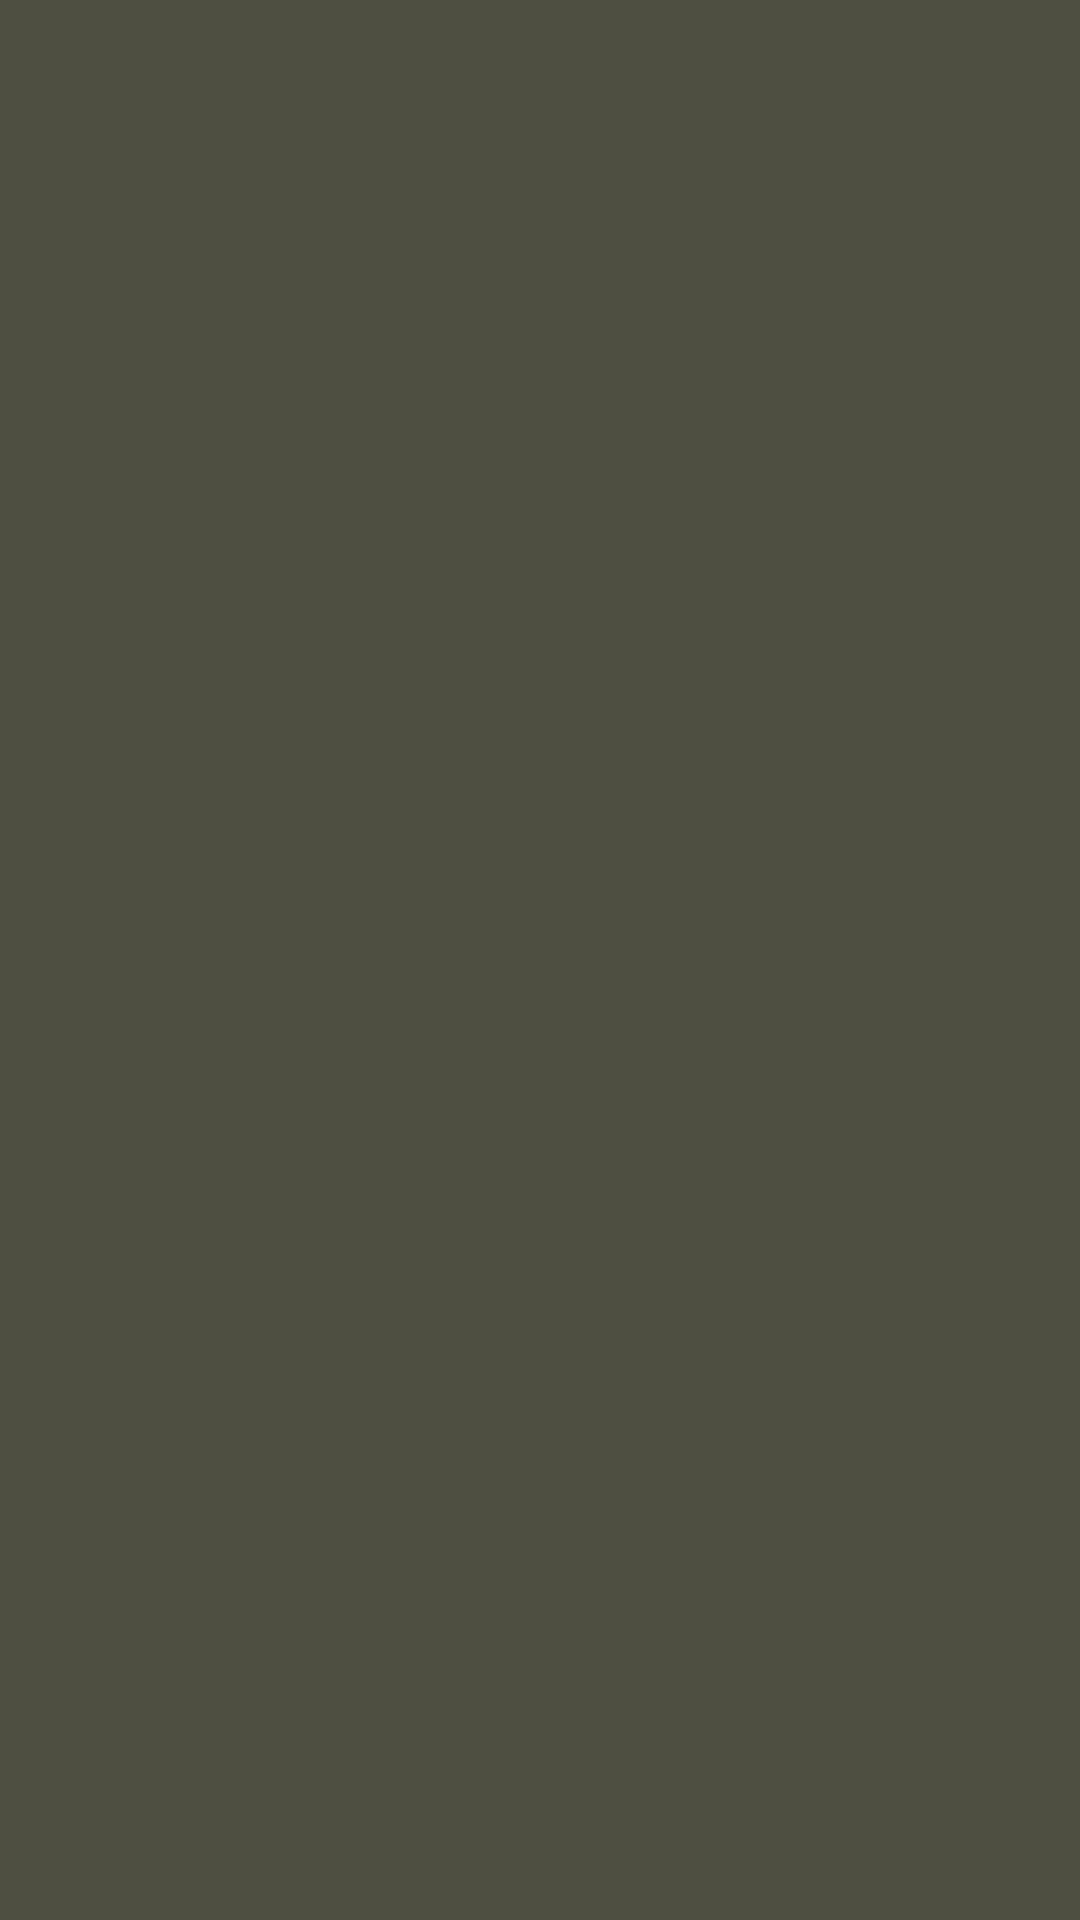 Res: 1080x1920, ... Solid Green Wallpaper Best Of 4e4e40 solid Color Image ...